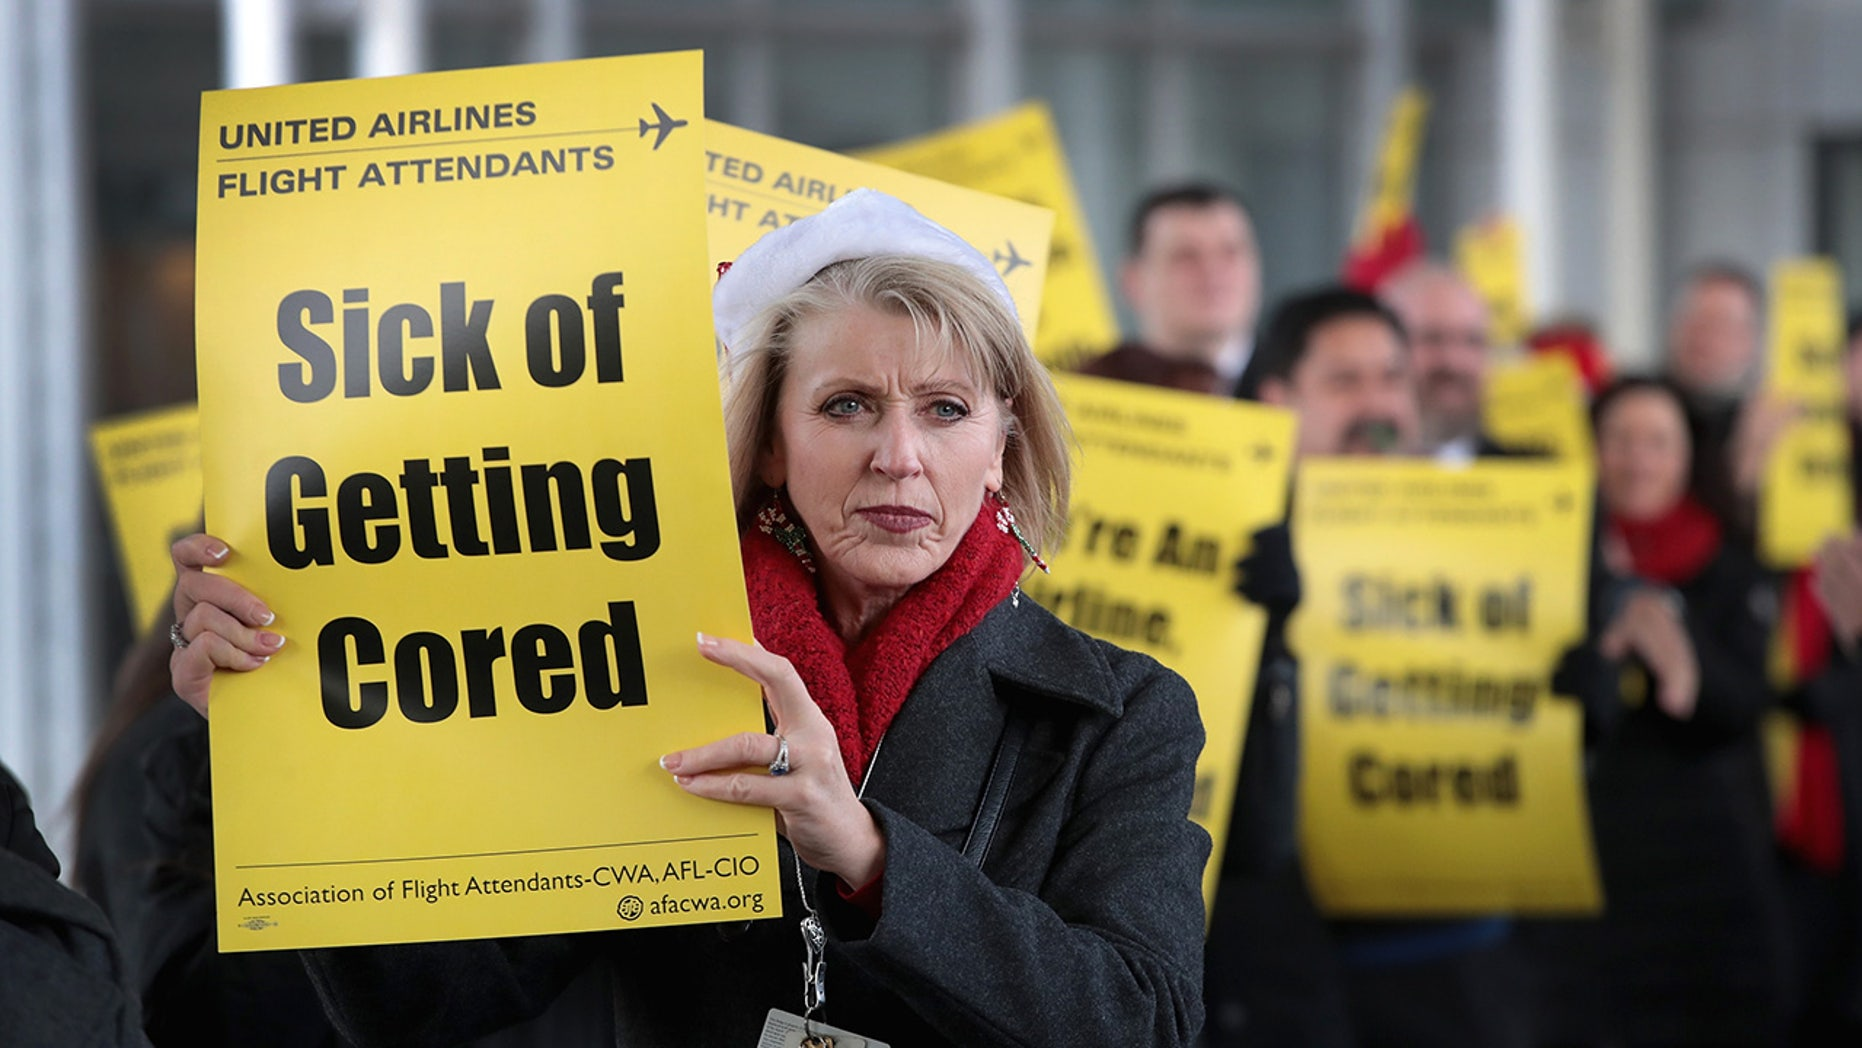 Members of the Association of Flight Attendants-CWA protest United Airlines at O'Hare International Airport on Dec. 13, 2018 in Chicago. (Photo by Scott Olson/Getty Images)